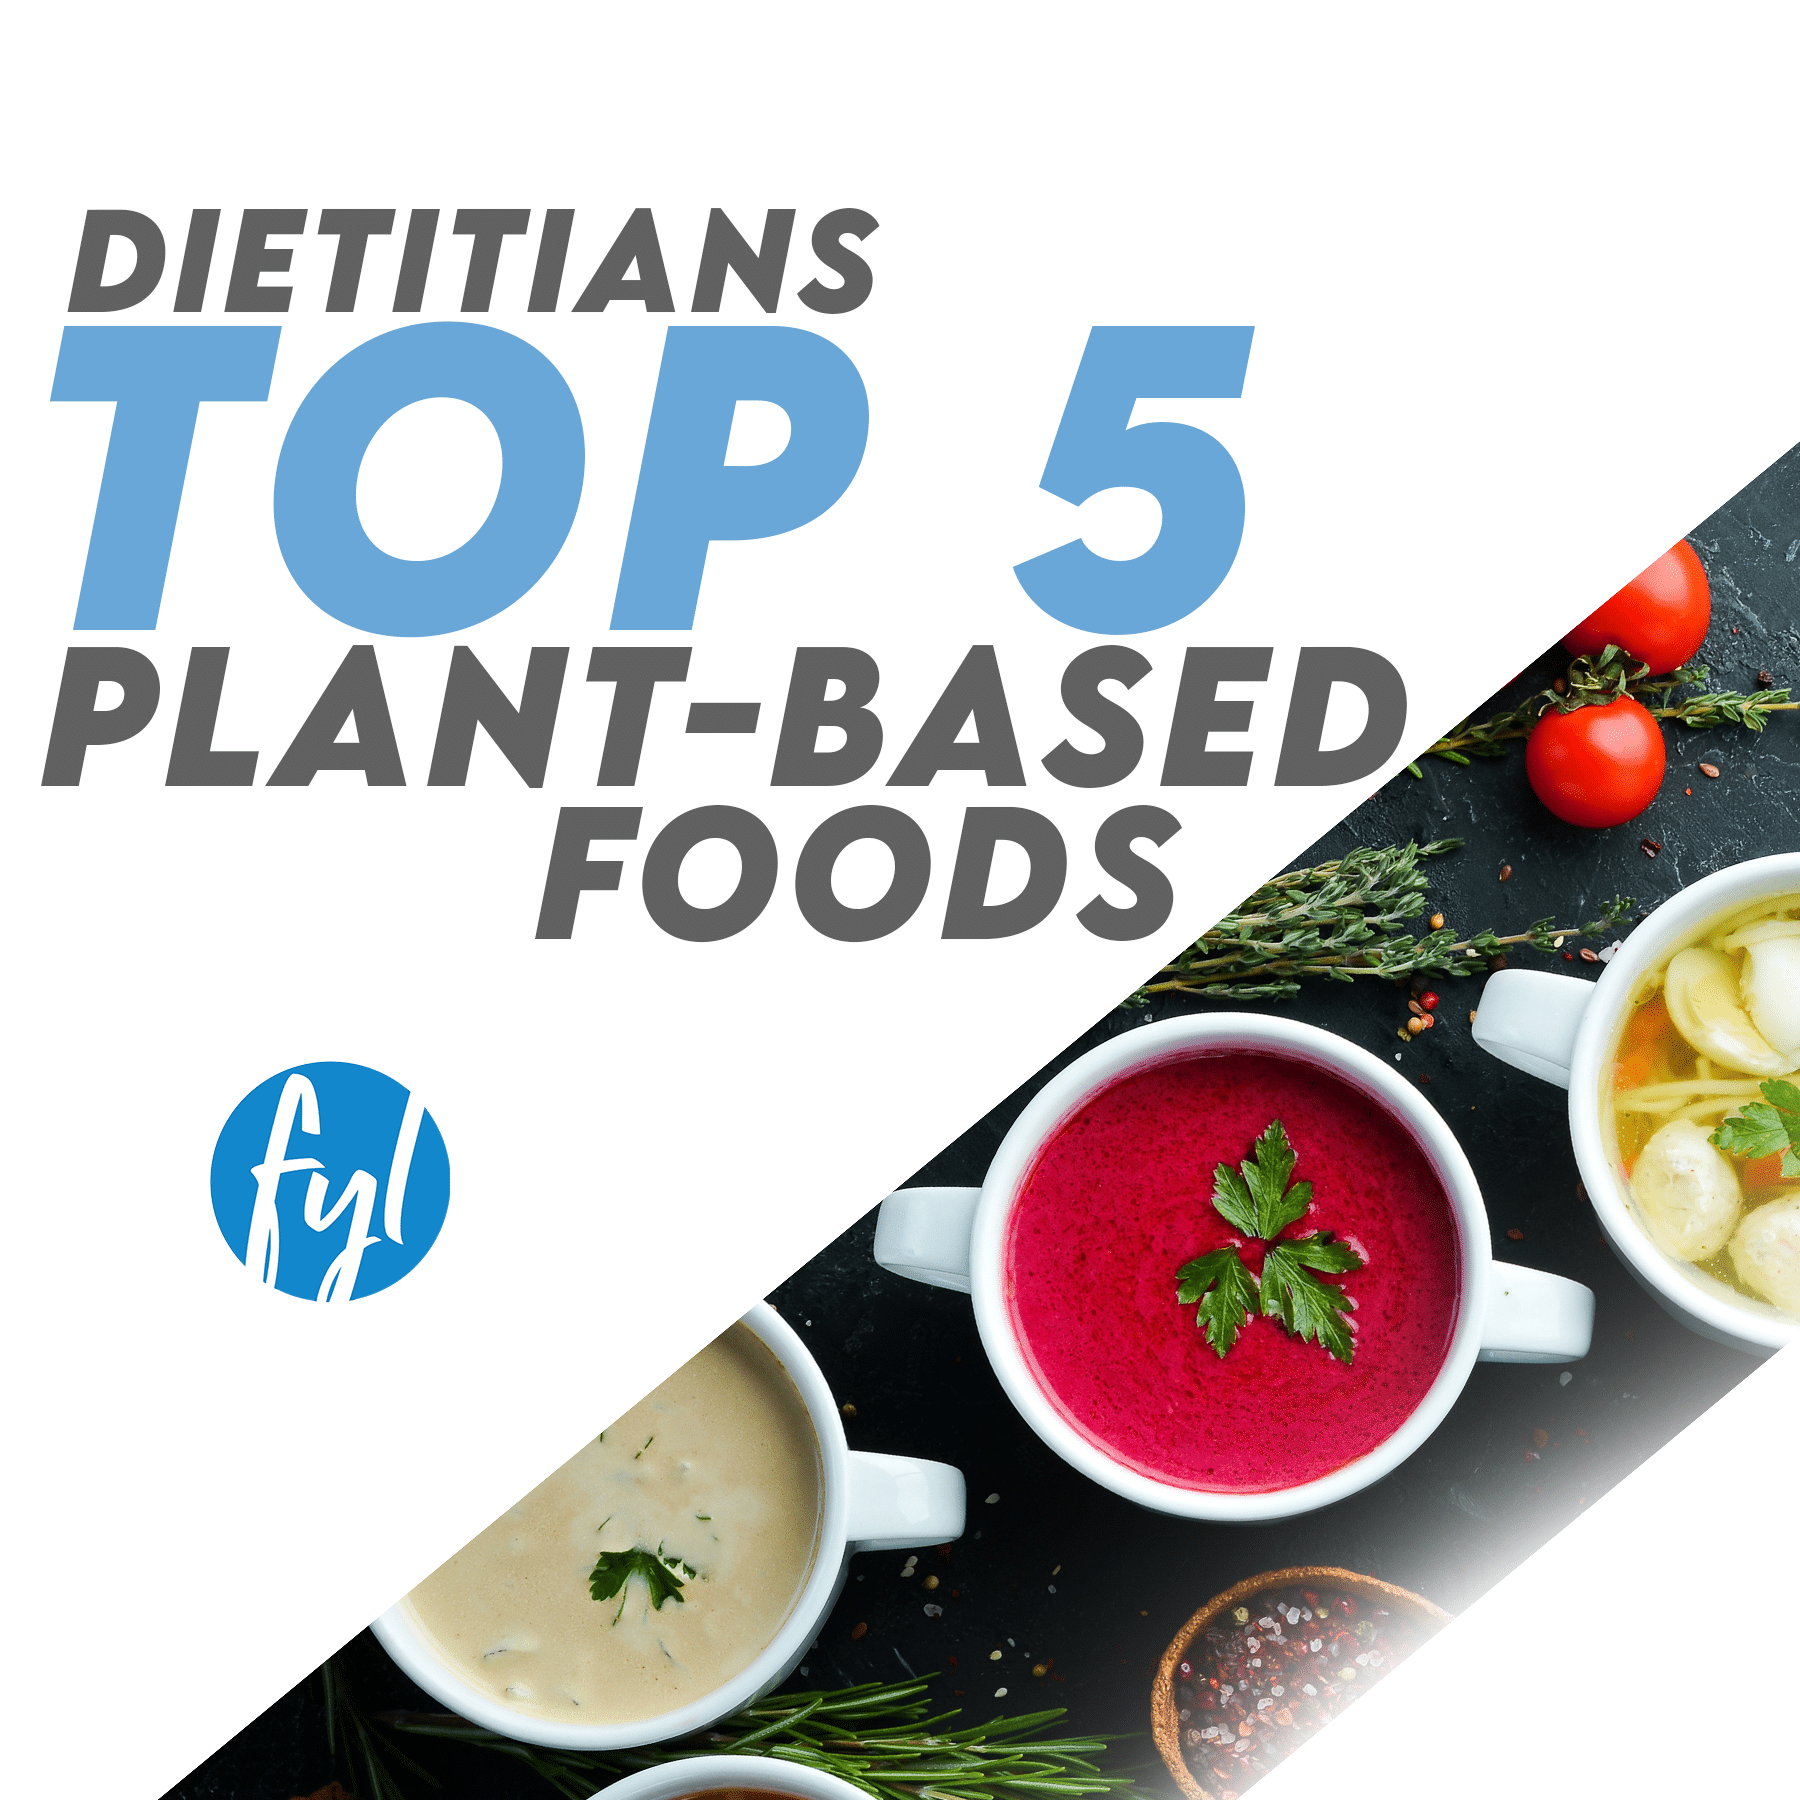 Dietitian's Top 5 Plant-Based Foods (If You're On A Student Budget)